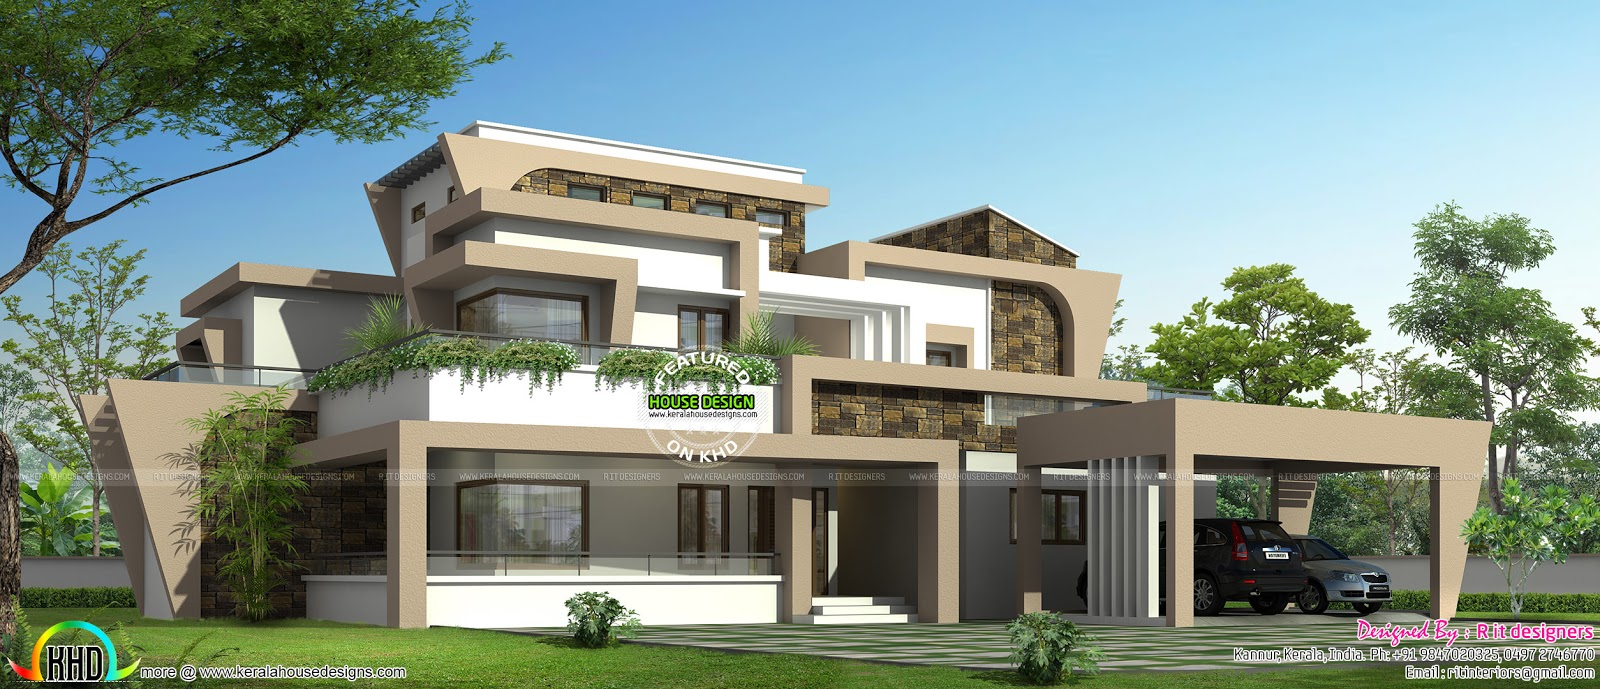 Unique modern home design in kerala kerala home design for Custom modern home plans